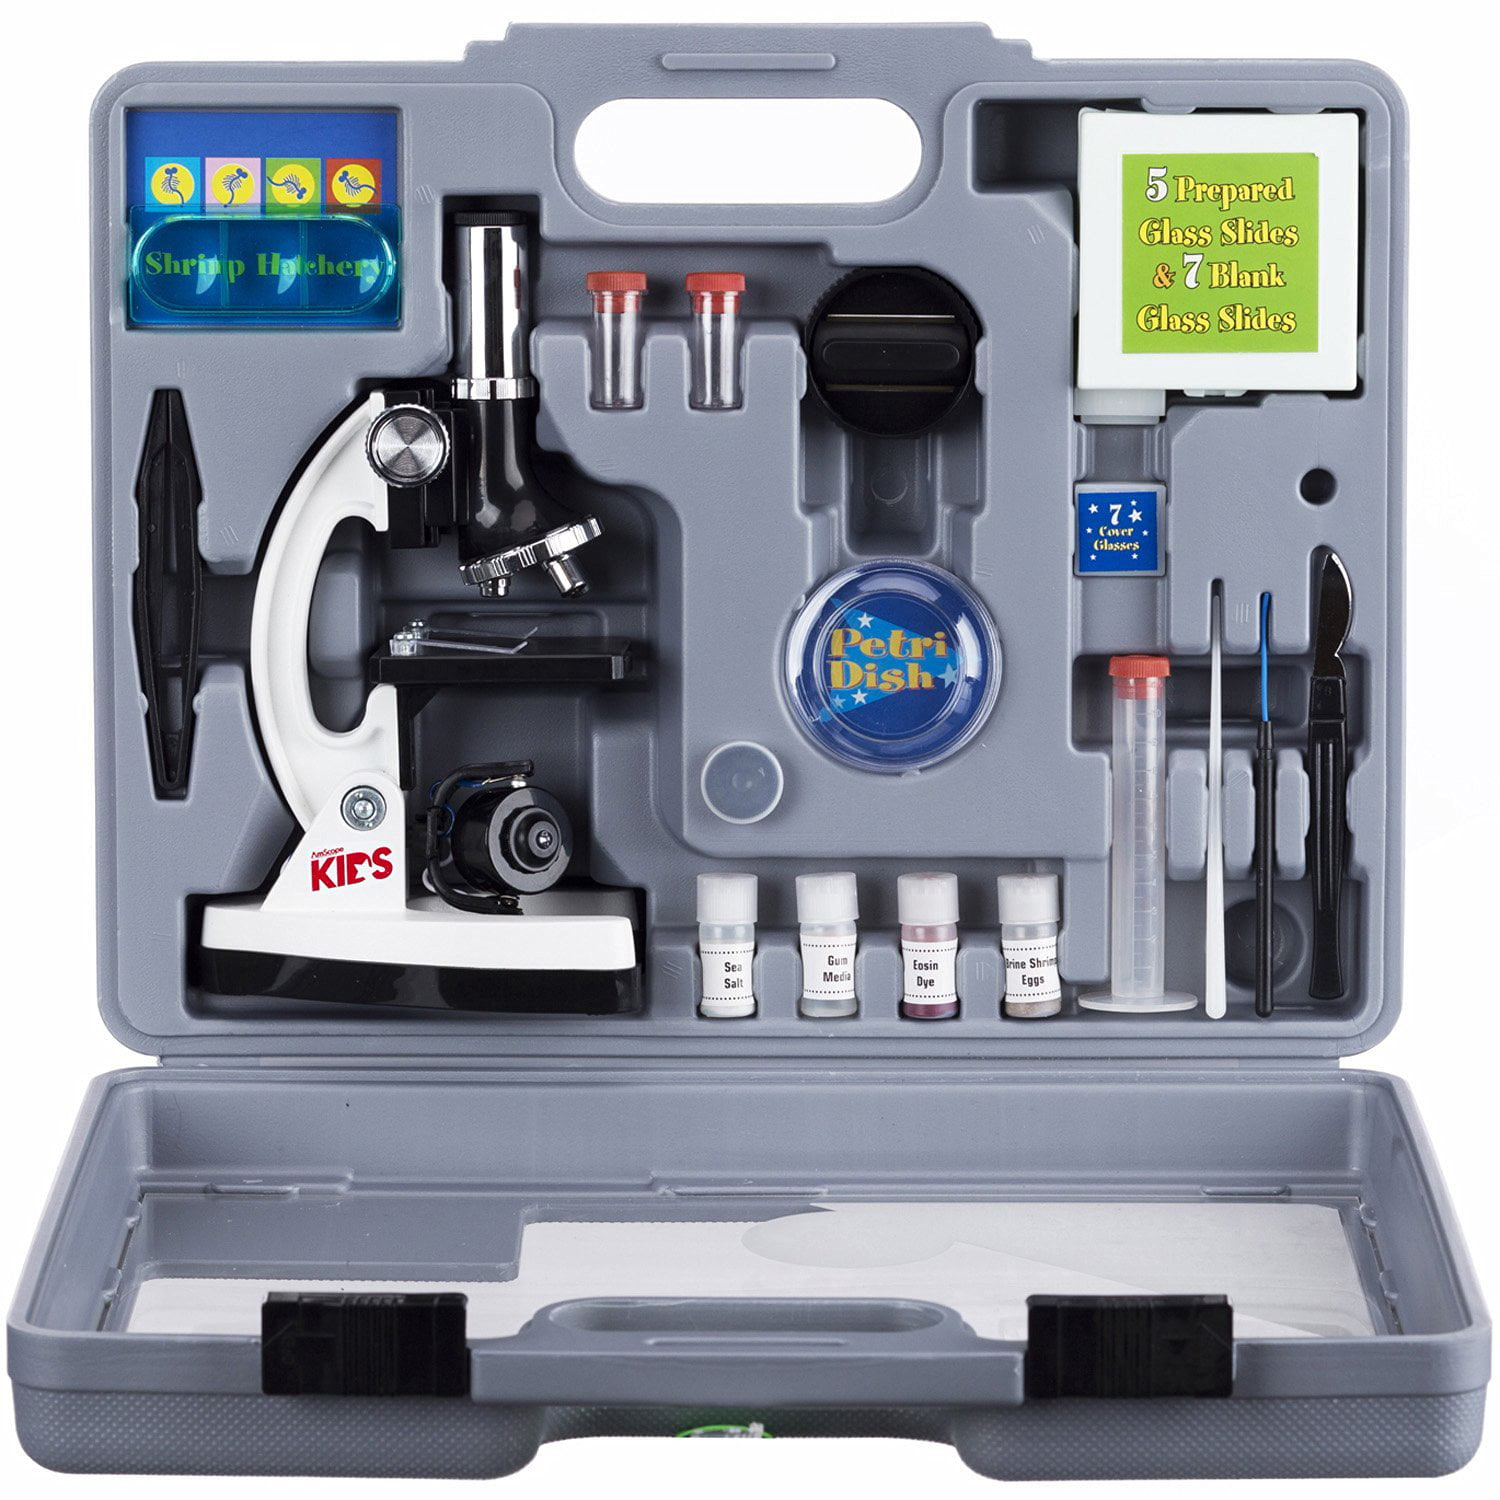 AMSCOPE-KIDS M30-ABS-KT2-W Beginner Microscope Kit, LED and Mirror Illumination, 300X, 600x, and 1200x Magnification,... by United Scope